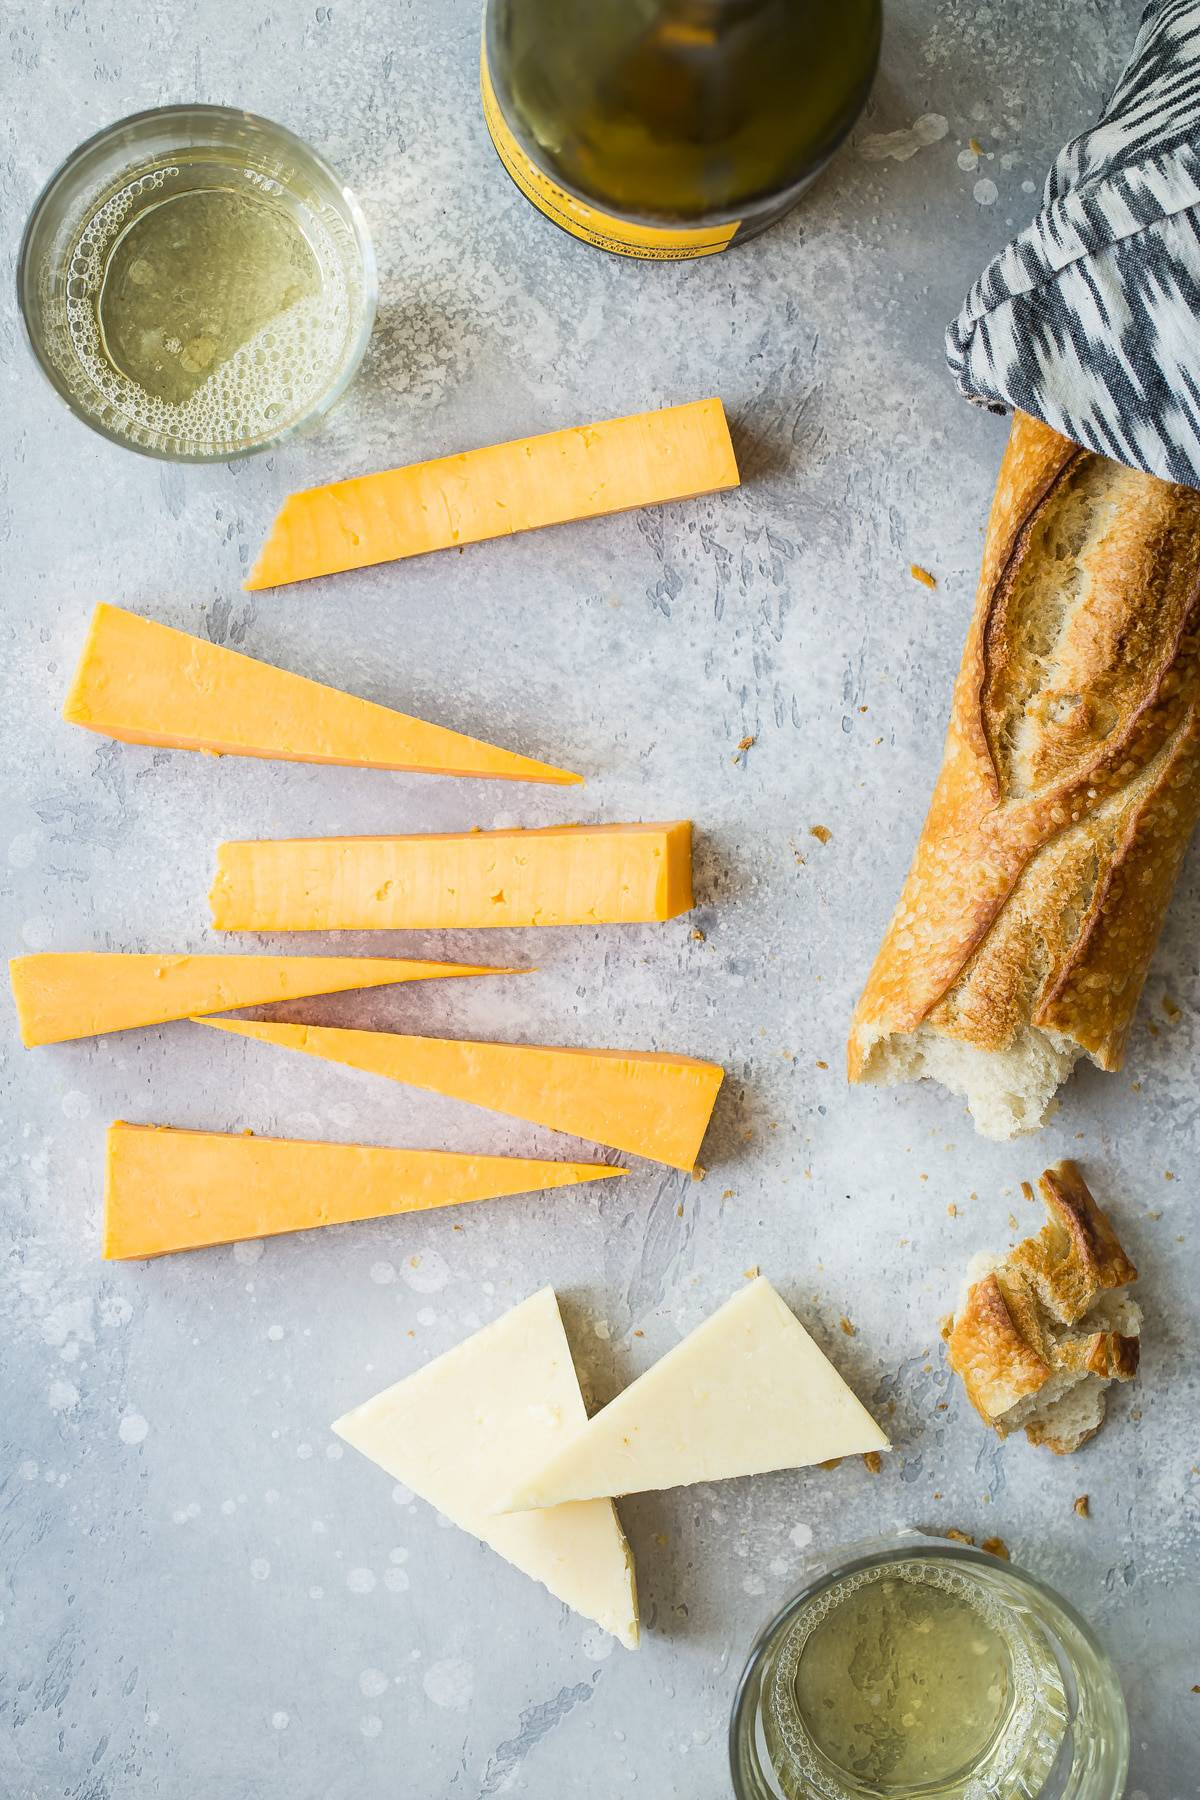 Two kinds of cheddar for a cheese board